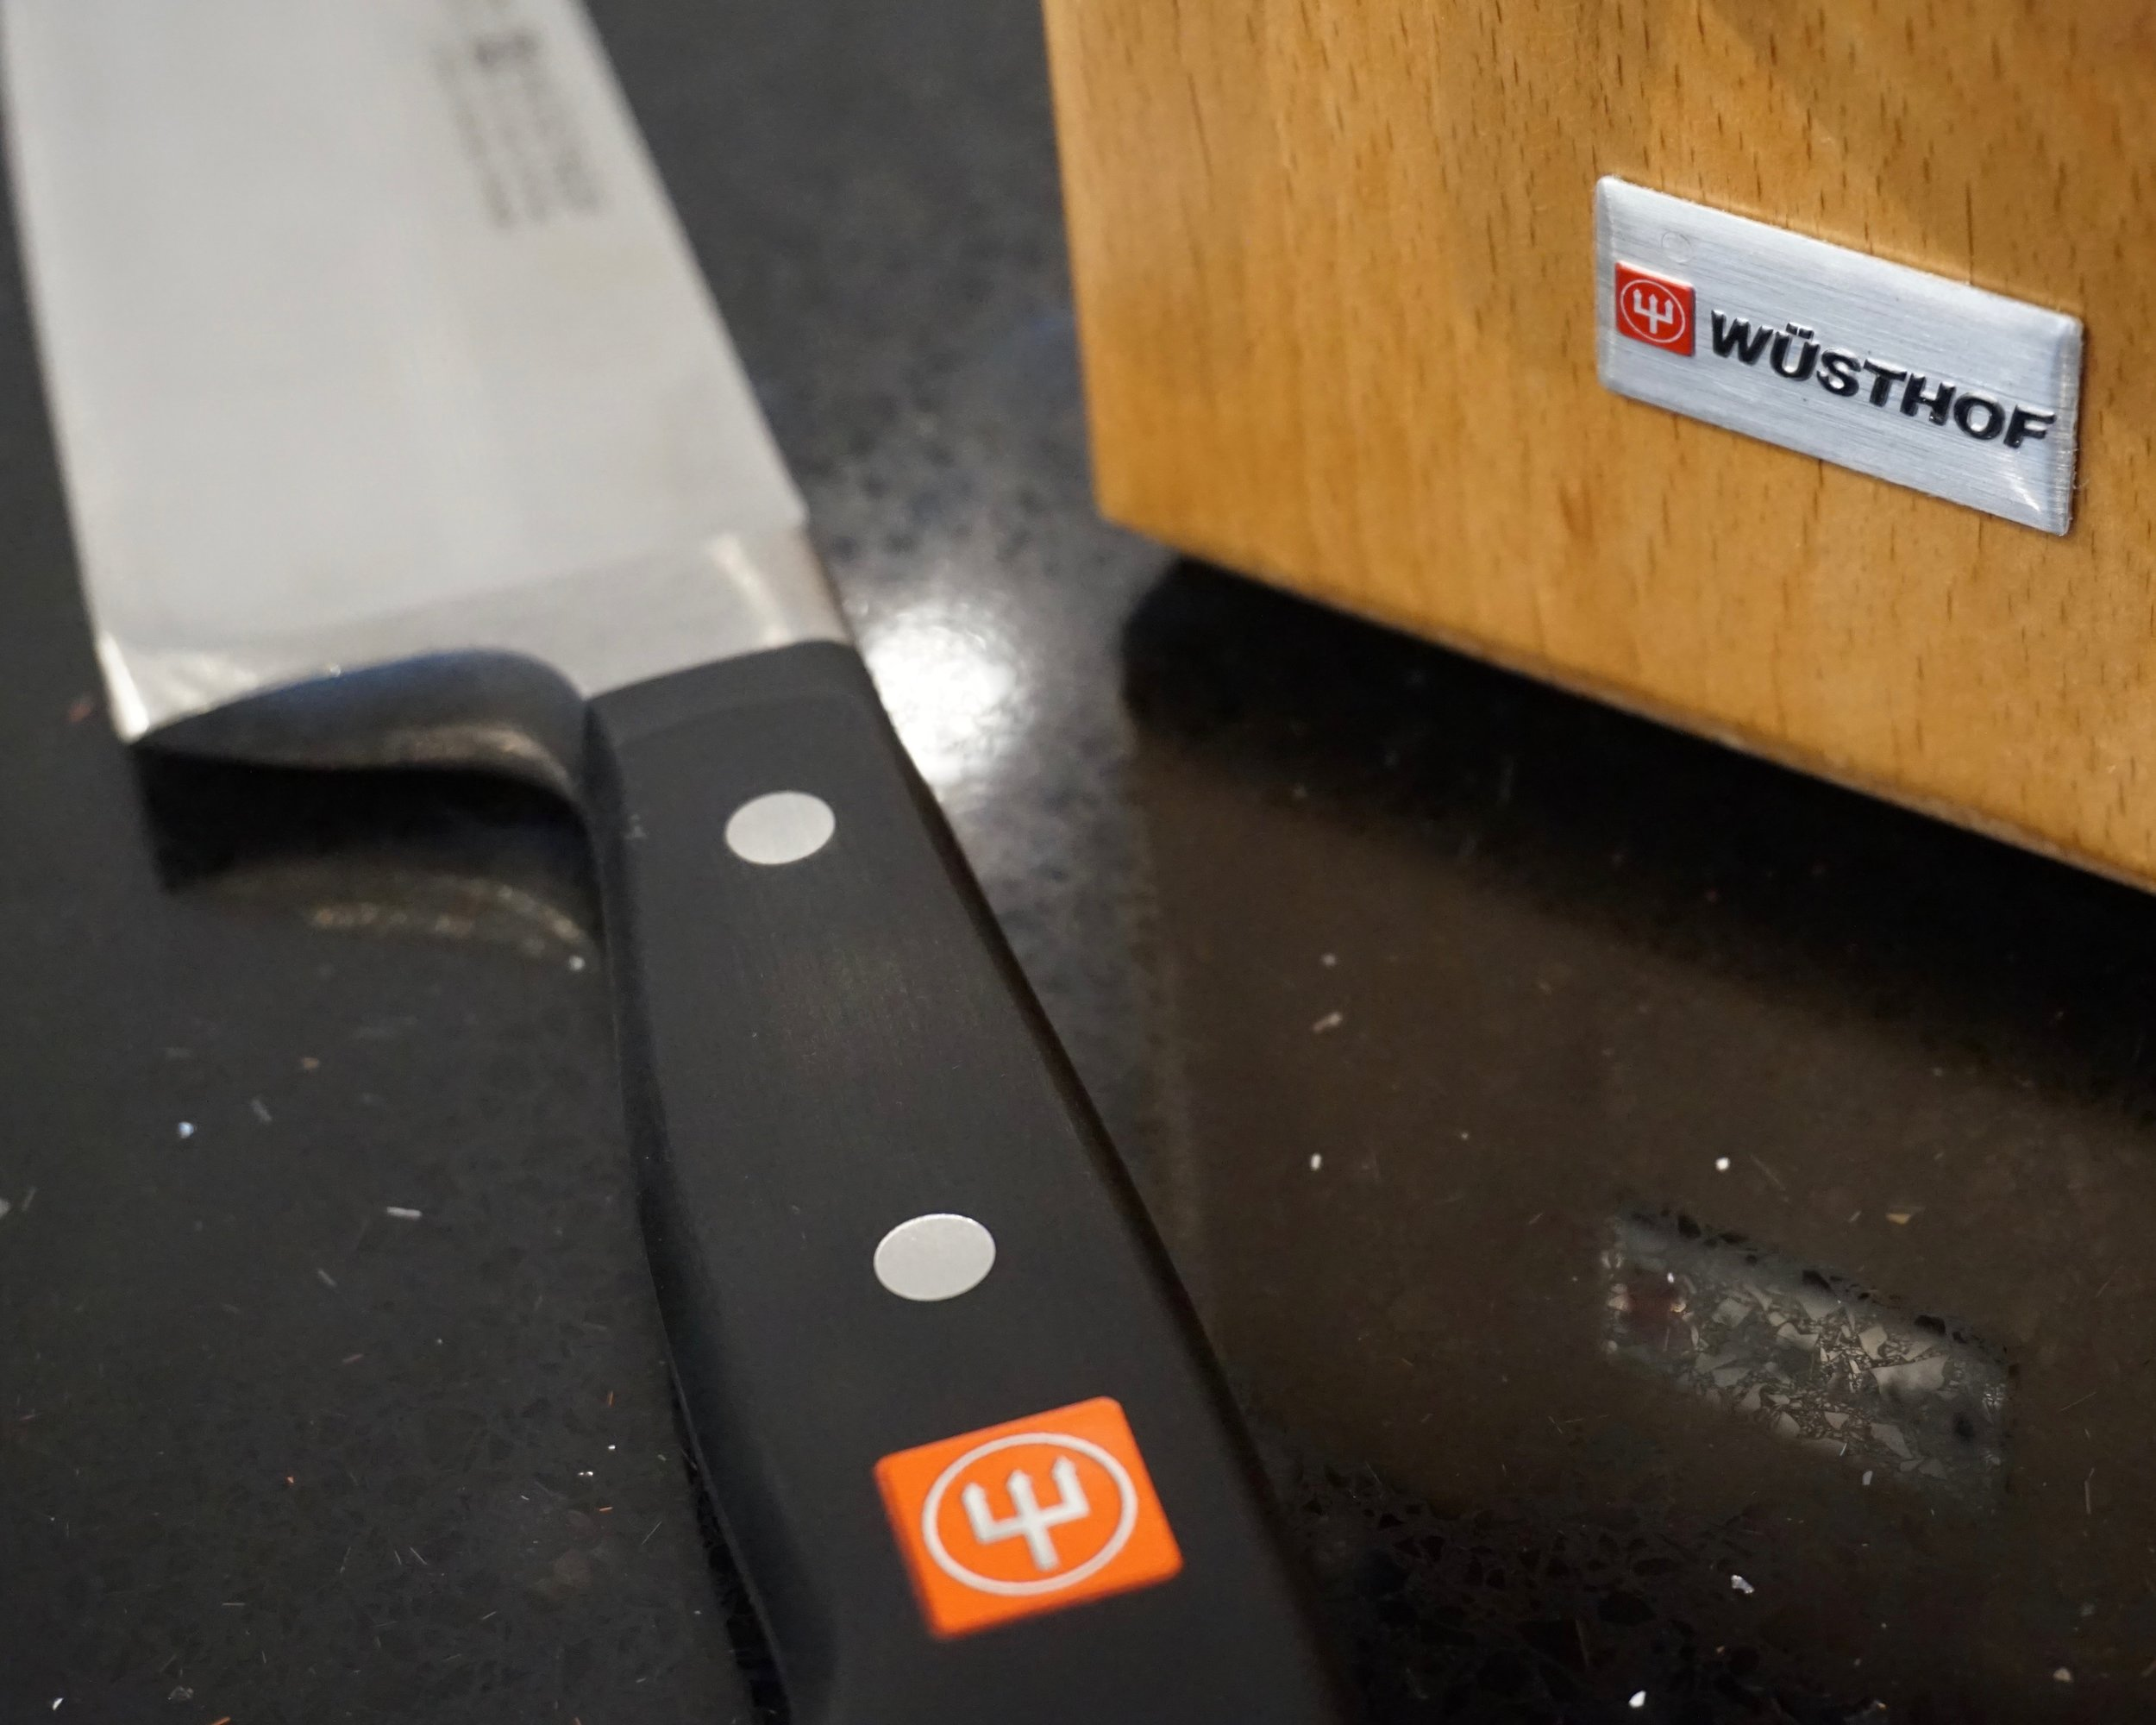 Wusthof knives in kitchen studio